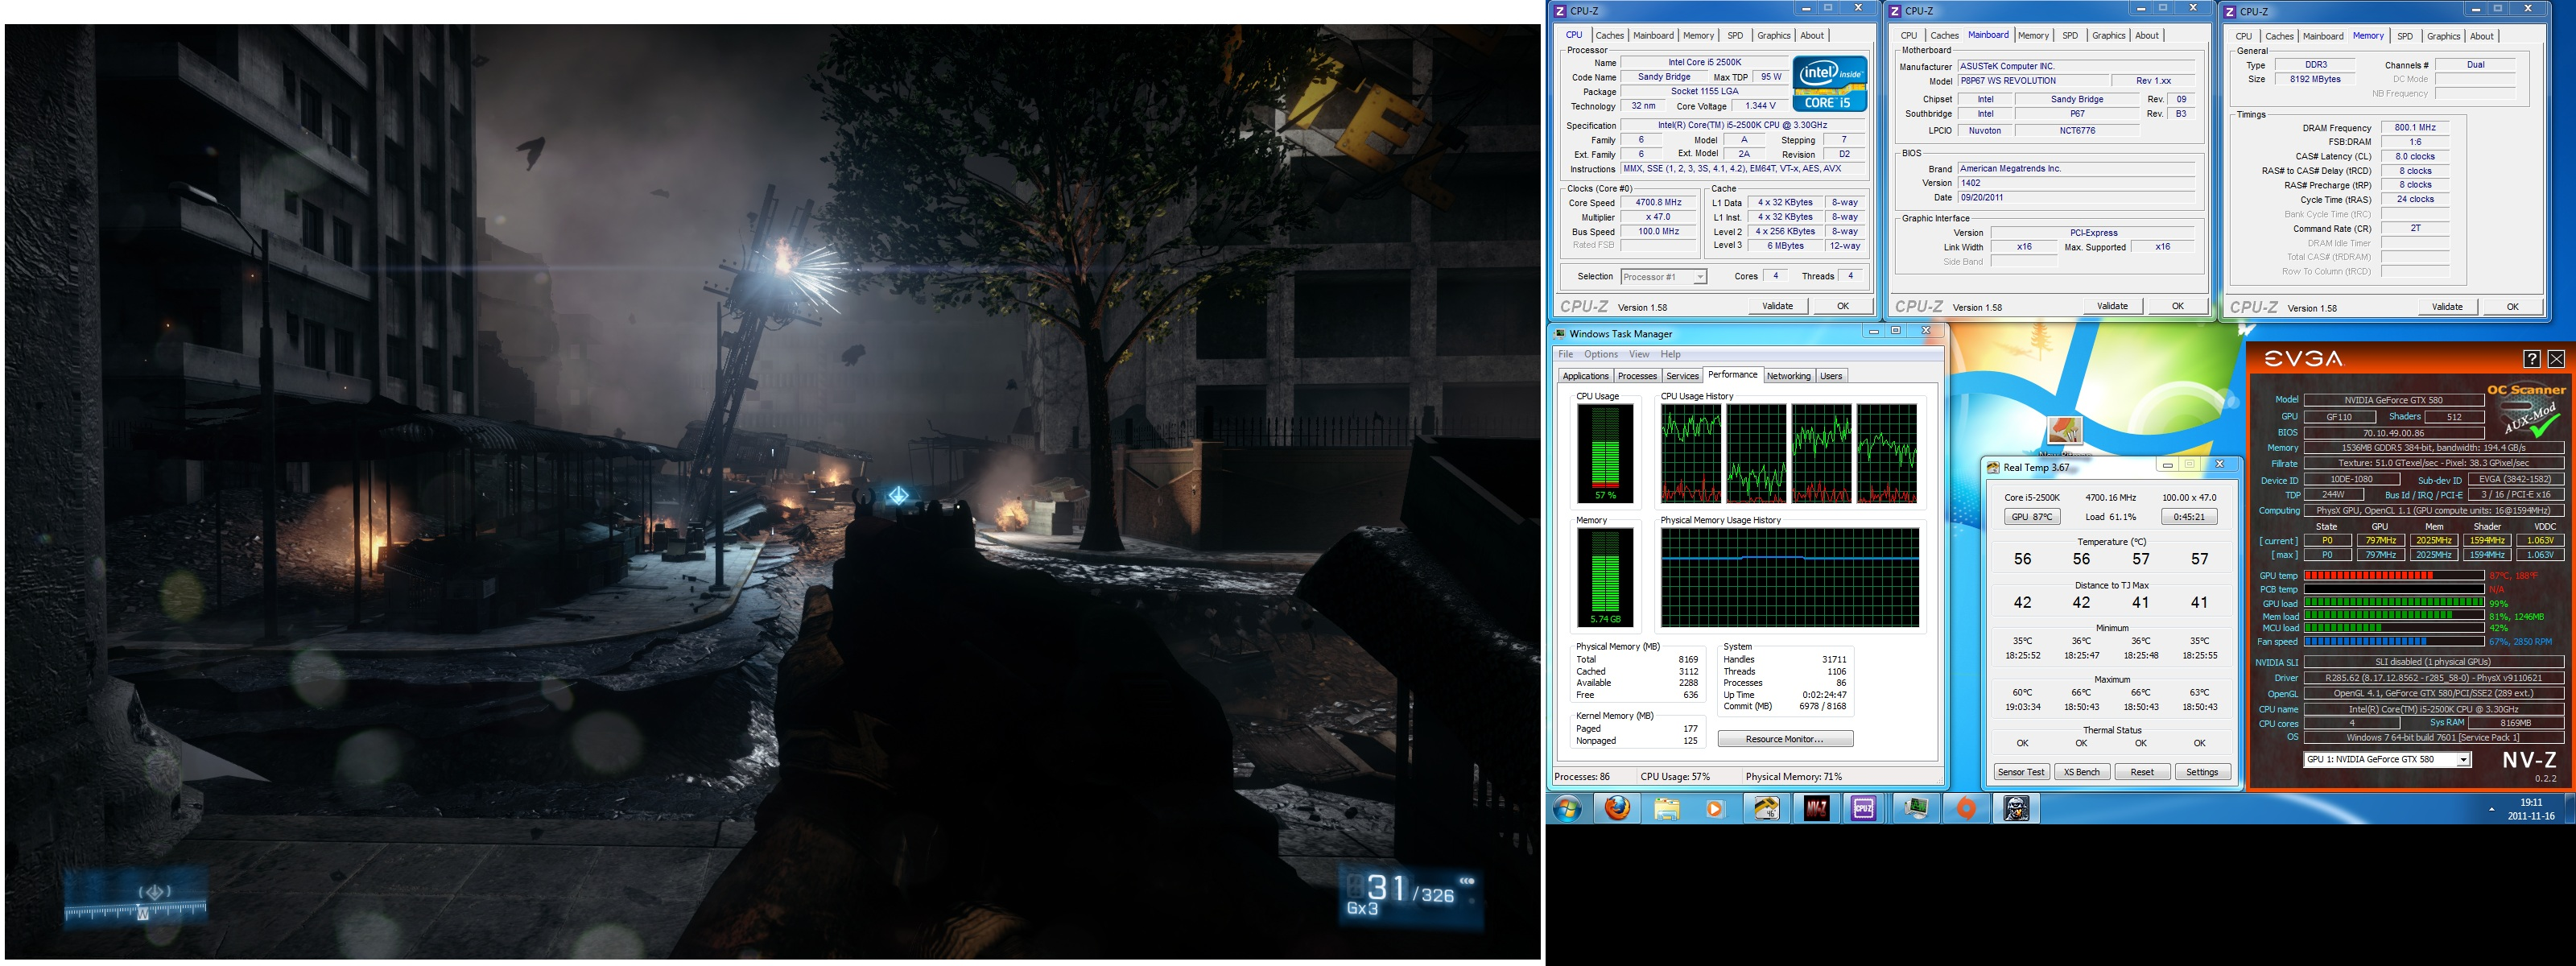 BF3 temperatures at load in full screen mode with older and hotter OC profile.